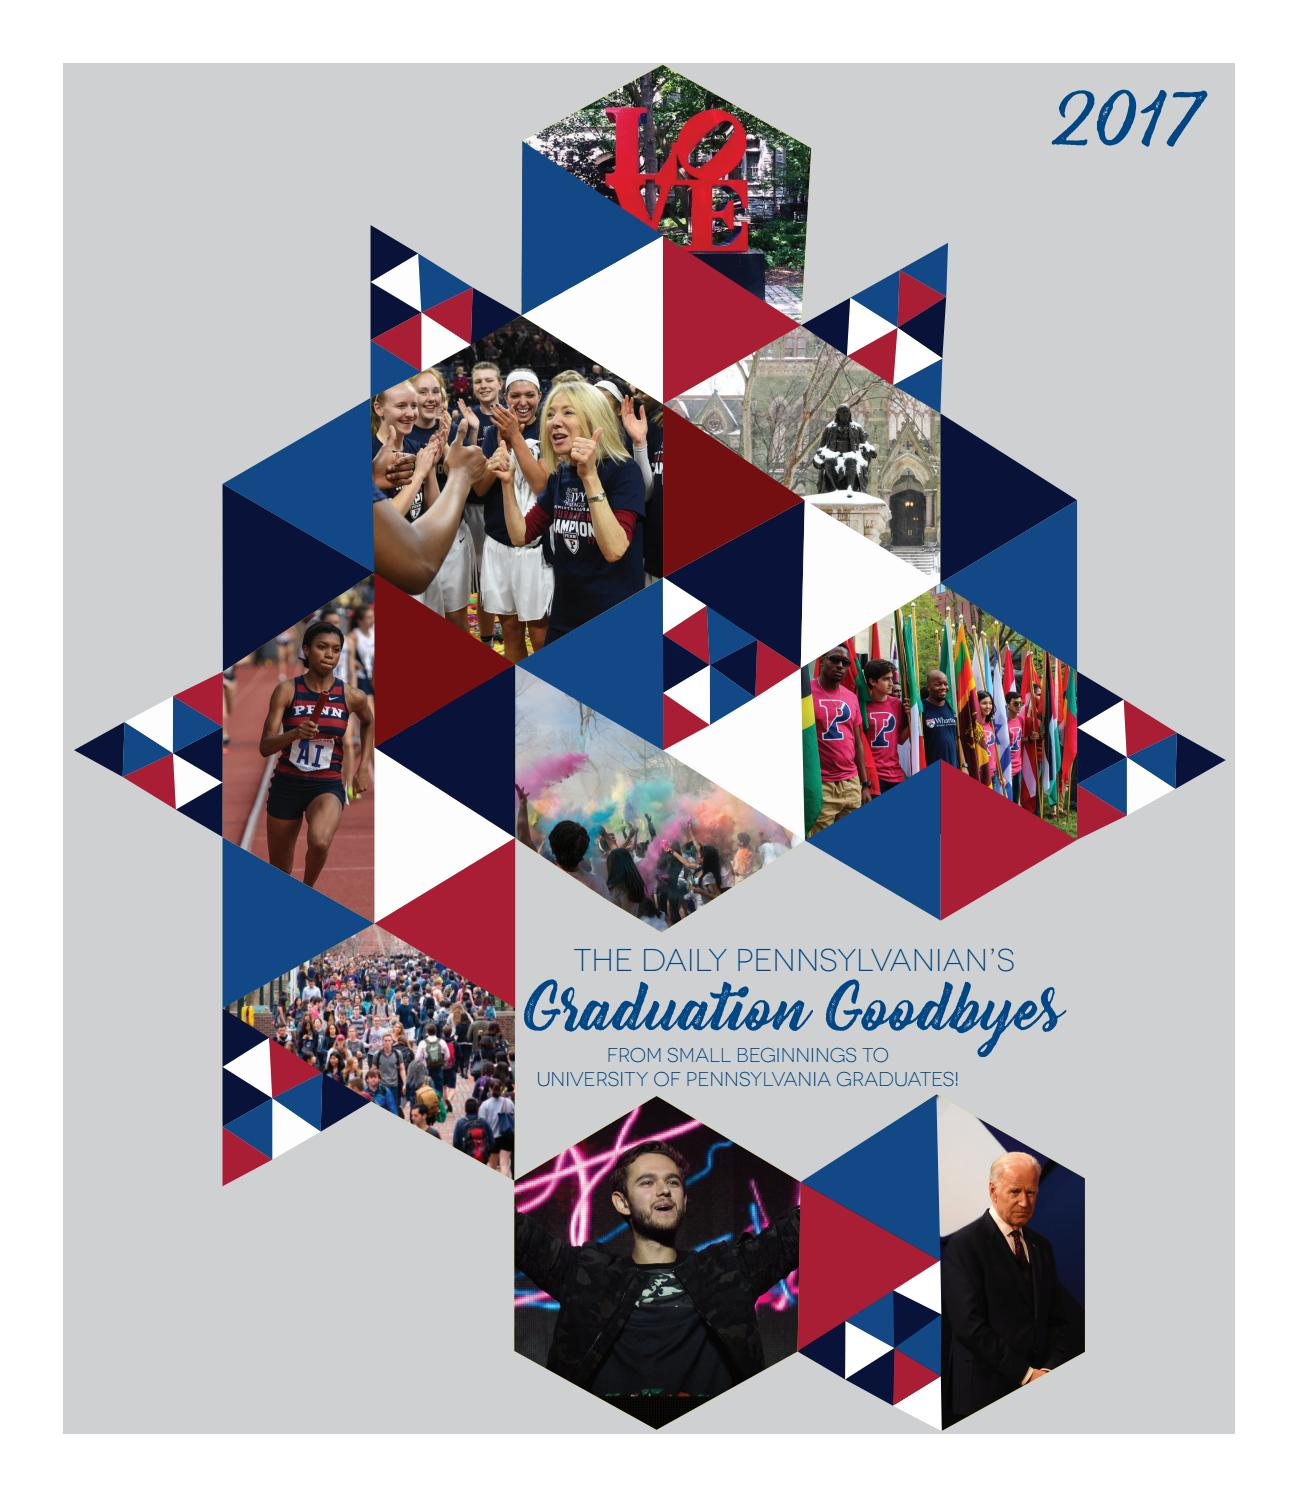 2017 Graduation Goodbyes by The Daily Pennsylvanian - issuu